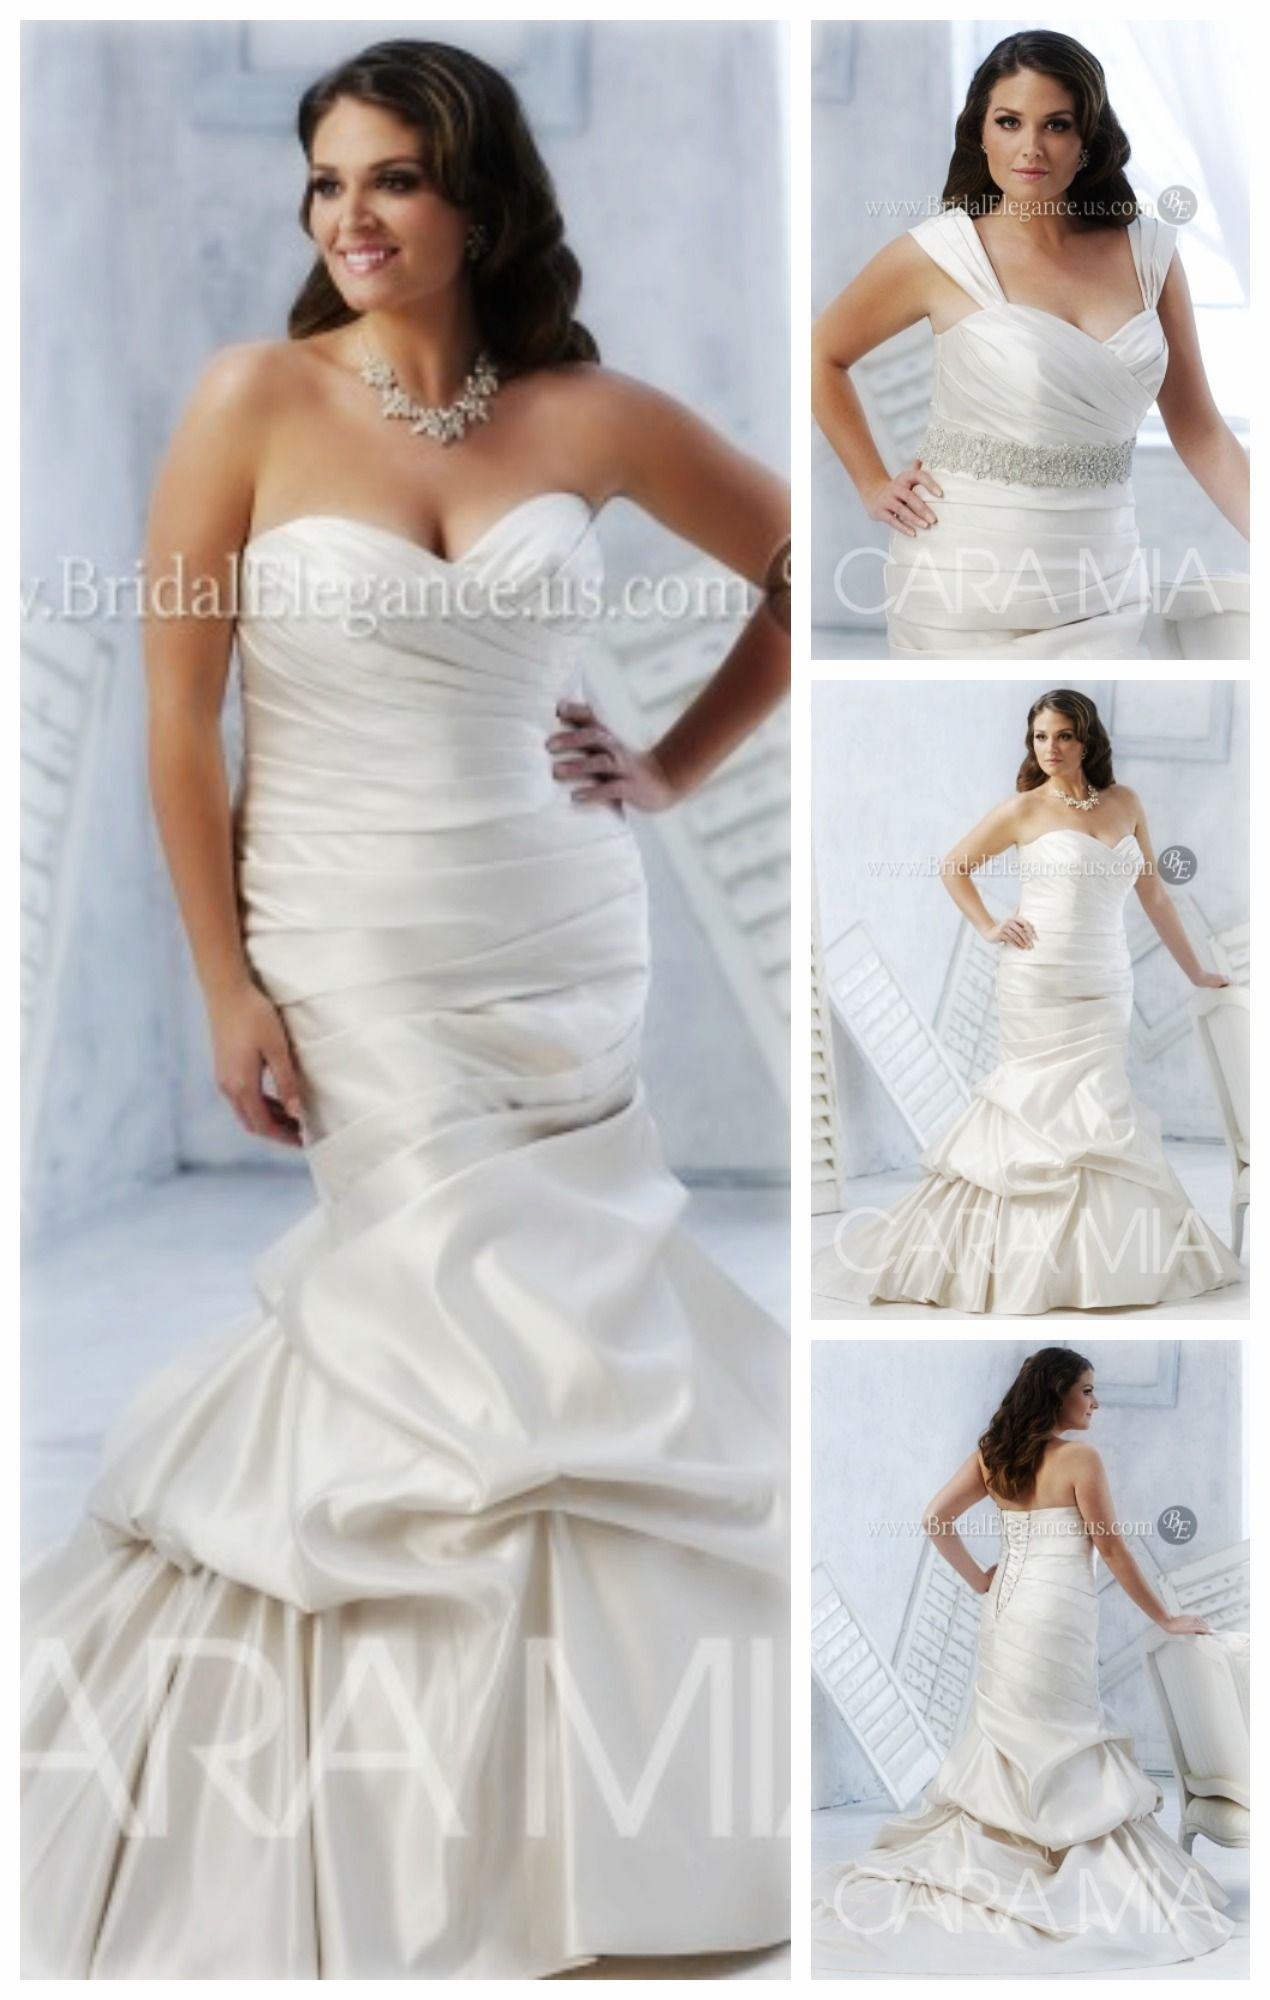 221541 Is A Perfect Plussize Wedding Gown Pair With Belt Or Leave Plain